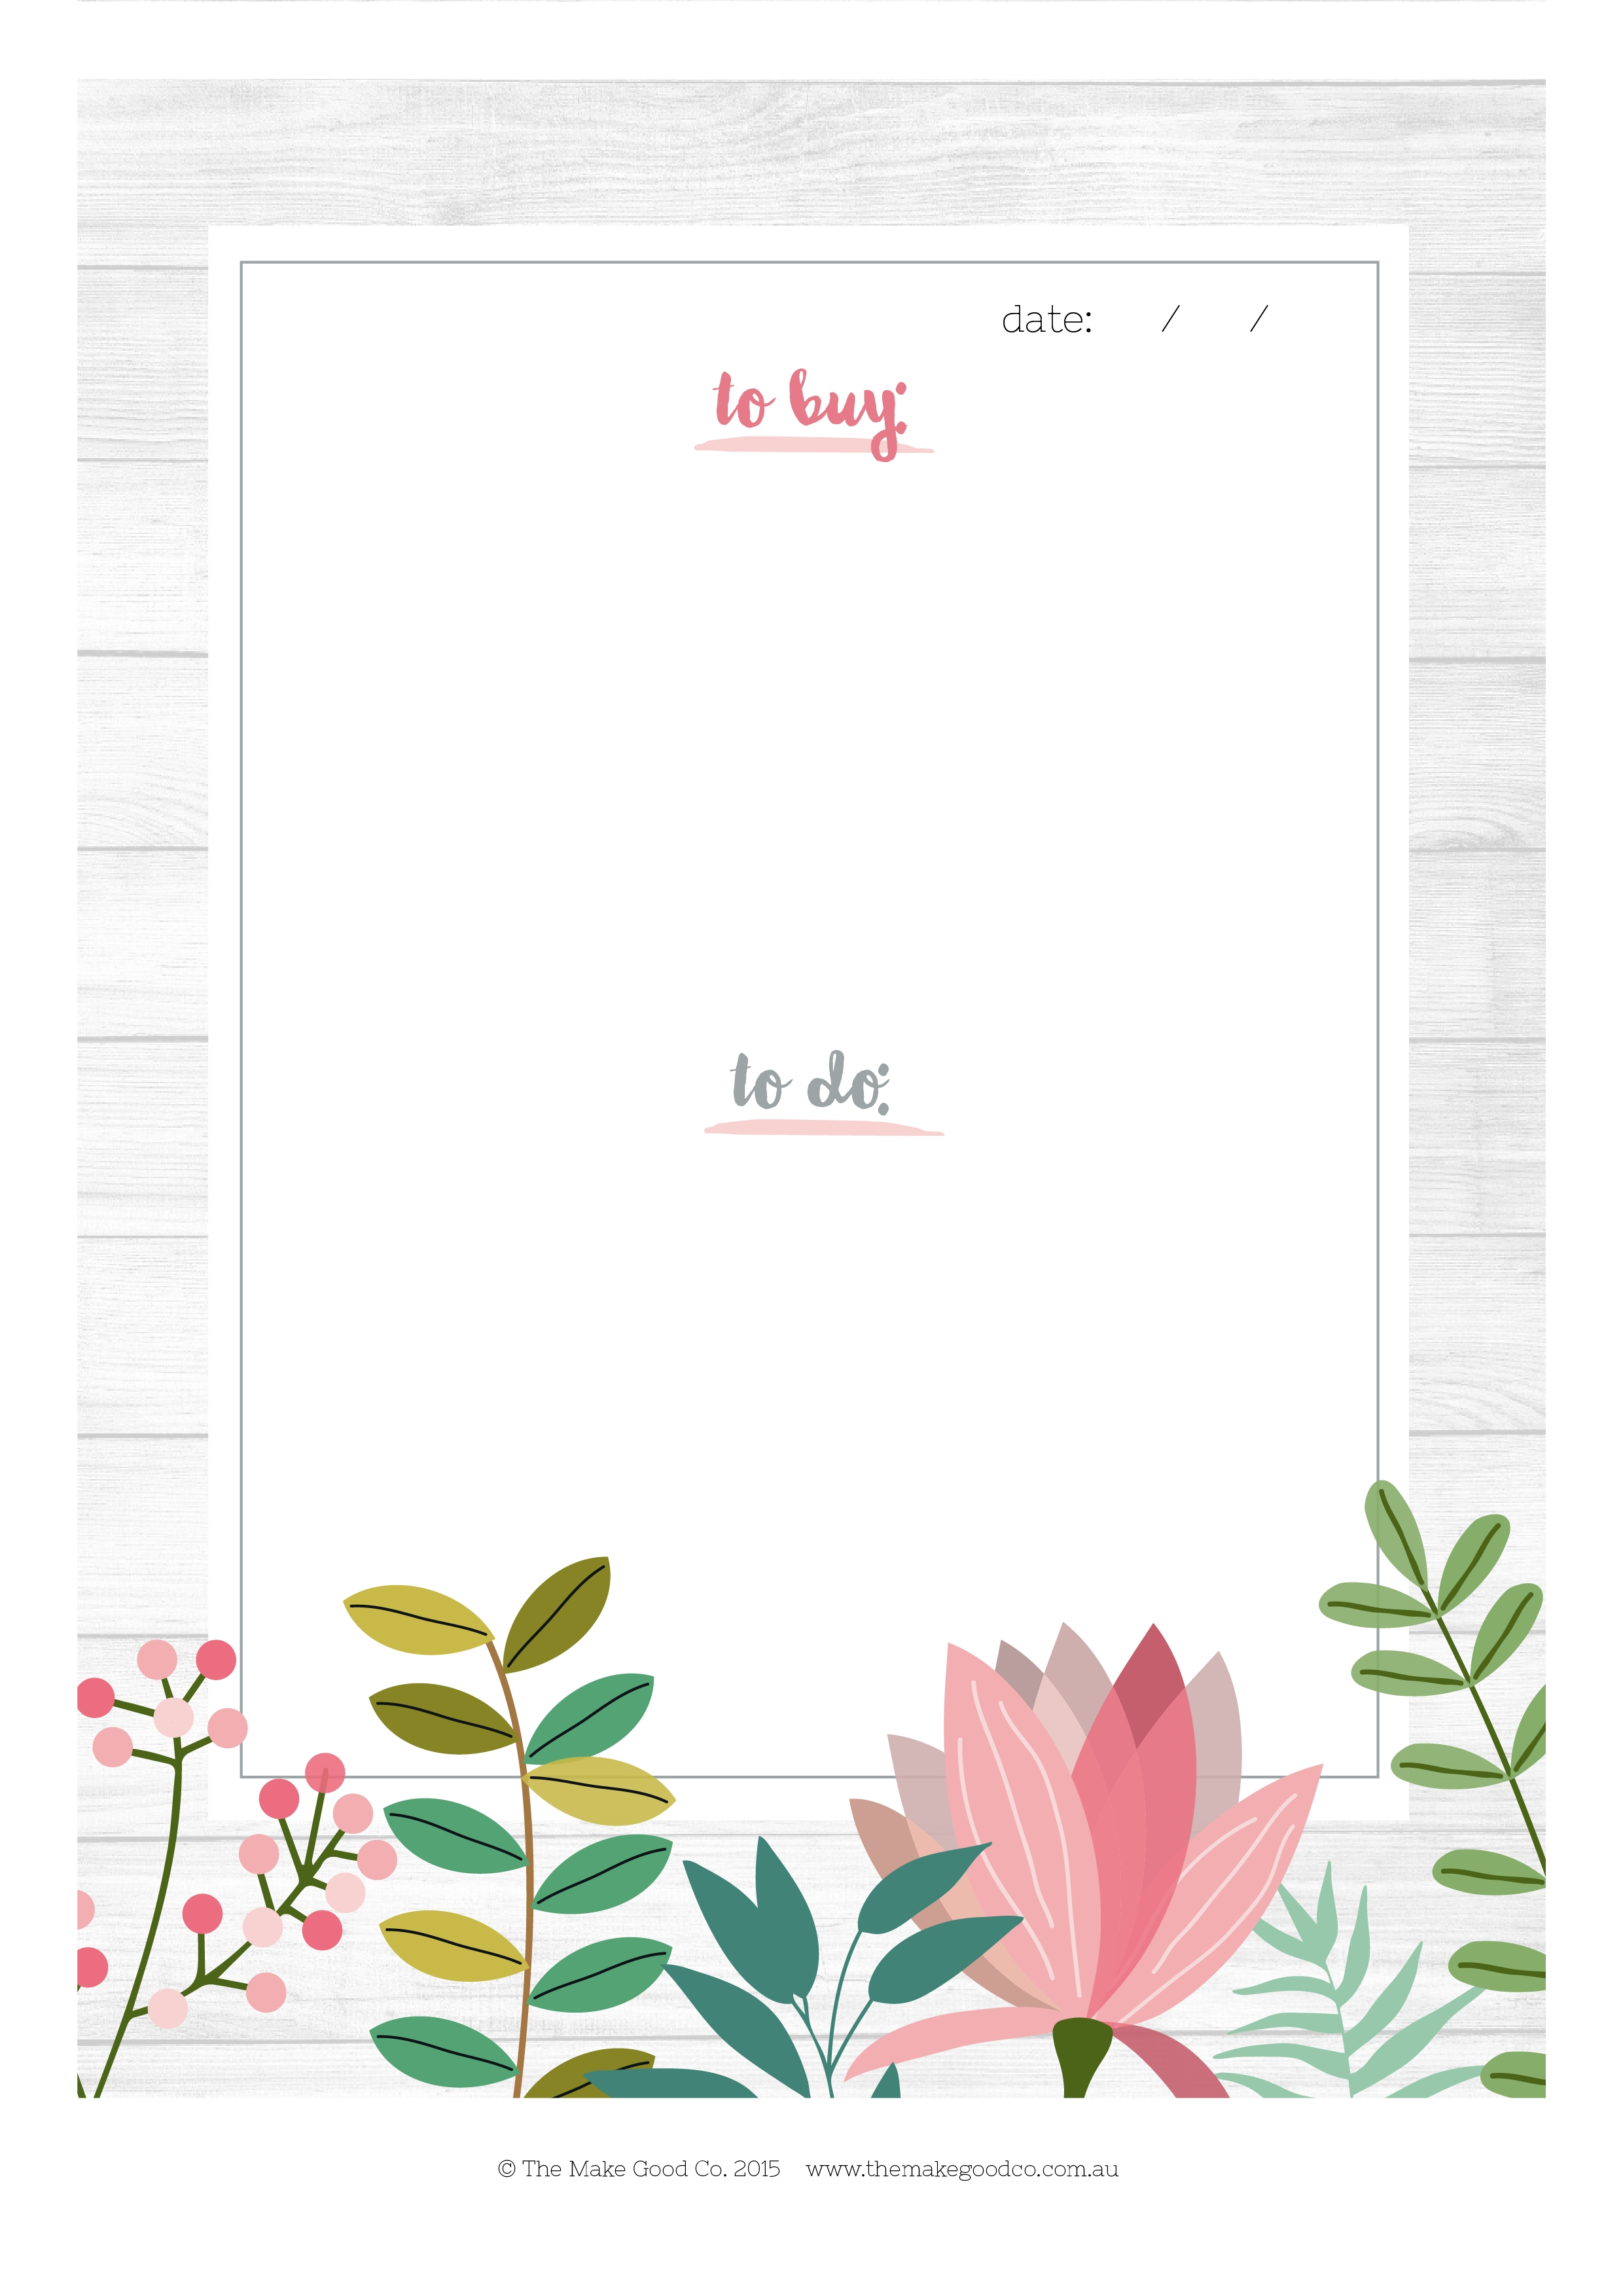 Free Printable To Do List Shopping List (Floral Design) within Weekly To Do List Printable Floral 22294